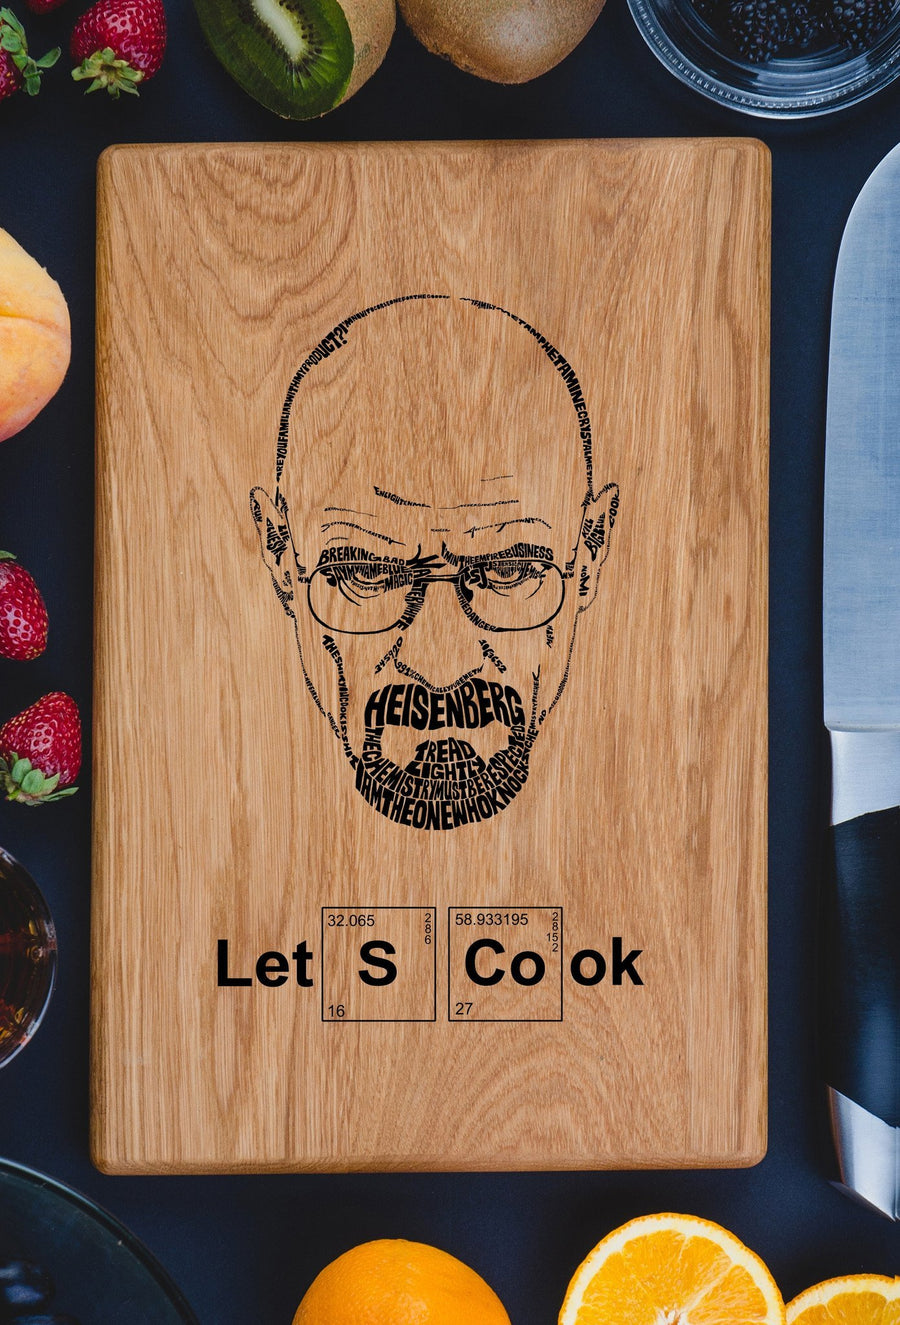 Let's Cook ,Breaking Bad Cutting board - TheHrdwood